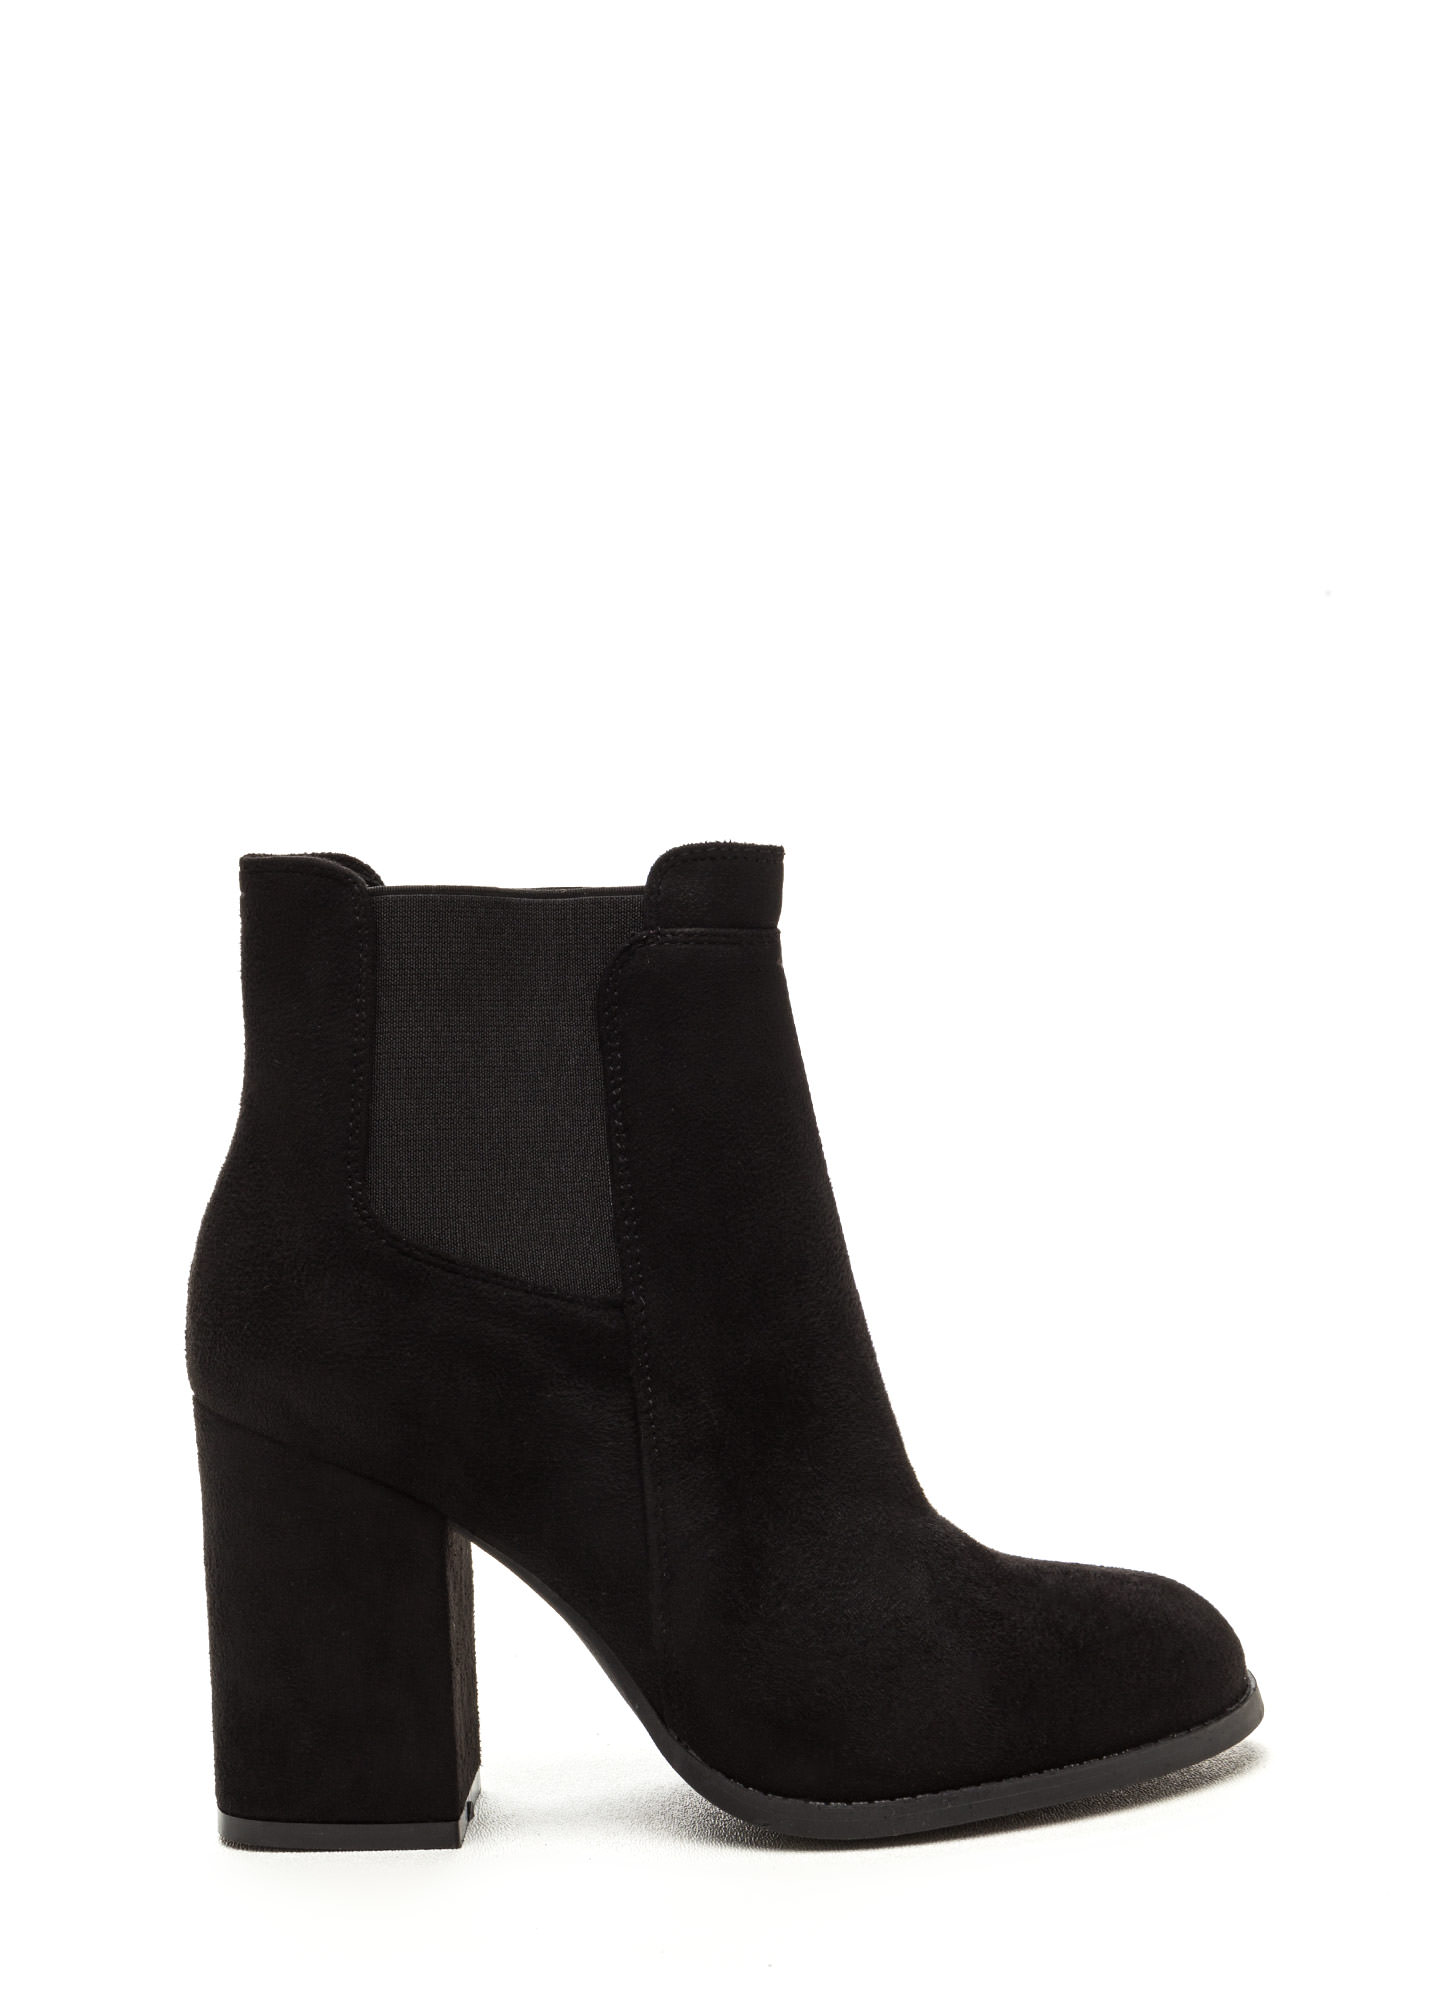 Daily Uniform Faux Suede Chunky Booties BLACK